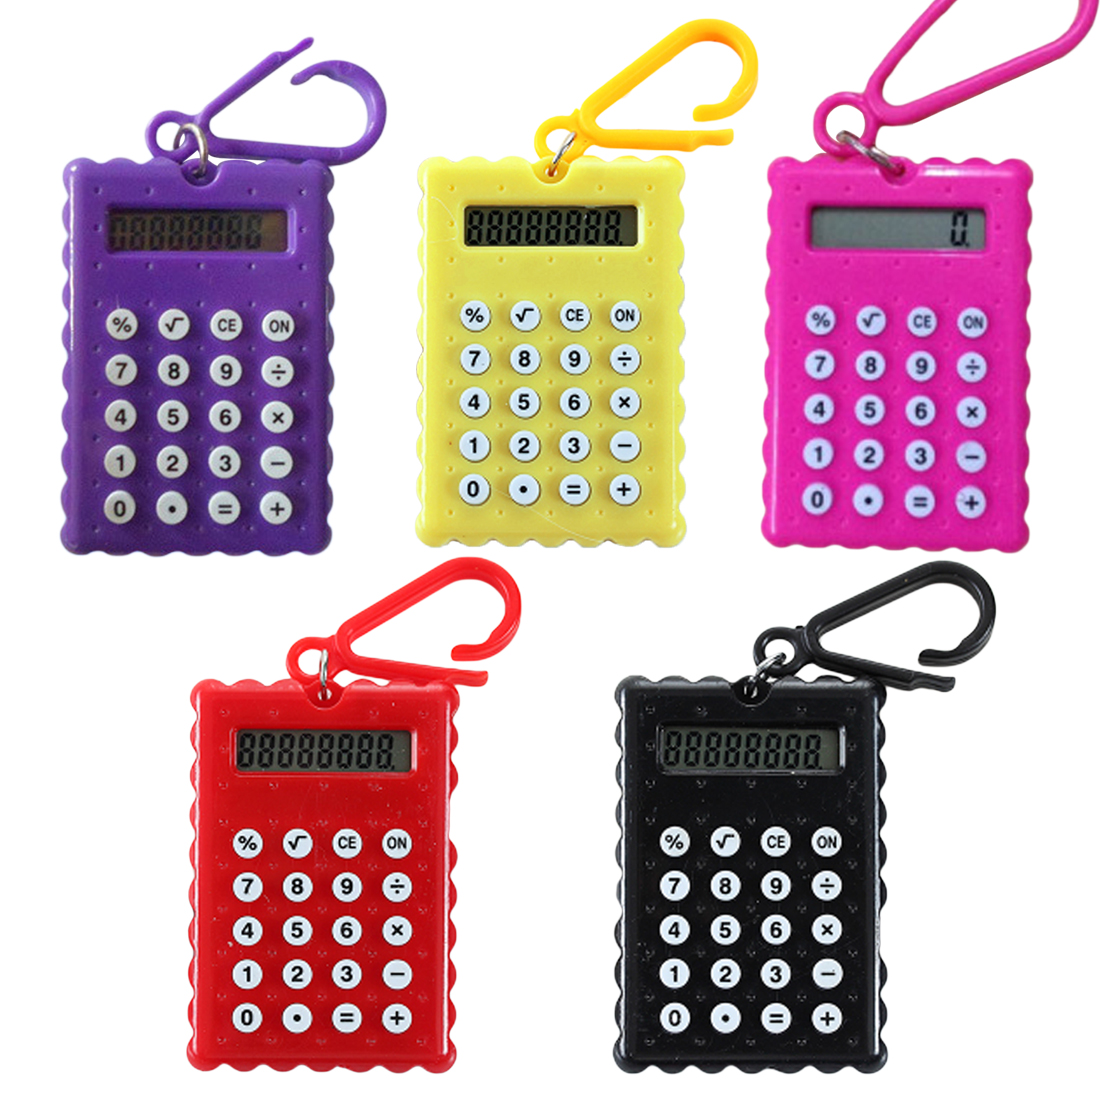 NOYOKERE Hot Sale Student Mini Electronic Calculator Candy Color Calculating Office Supplies Gift Super Small